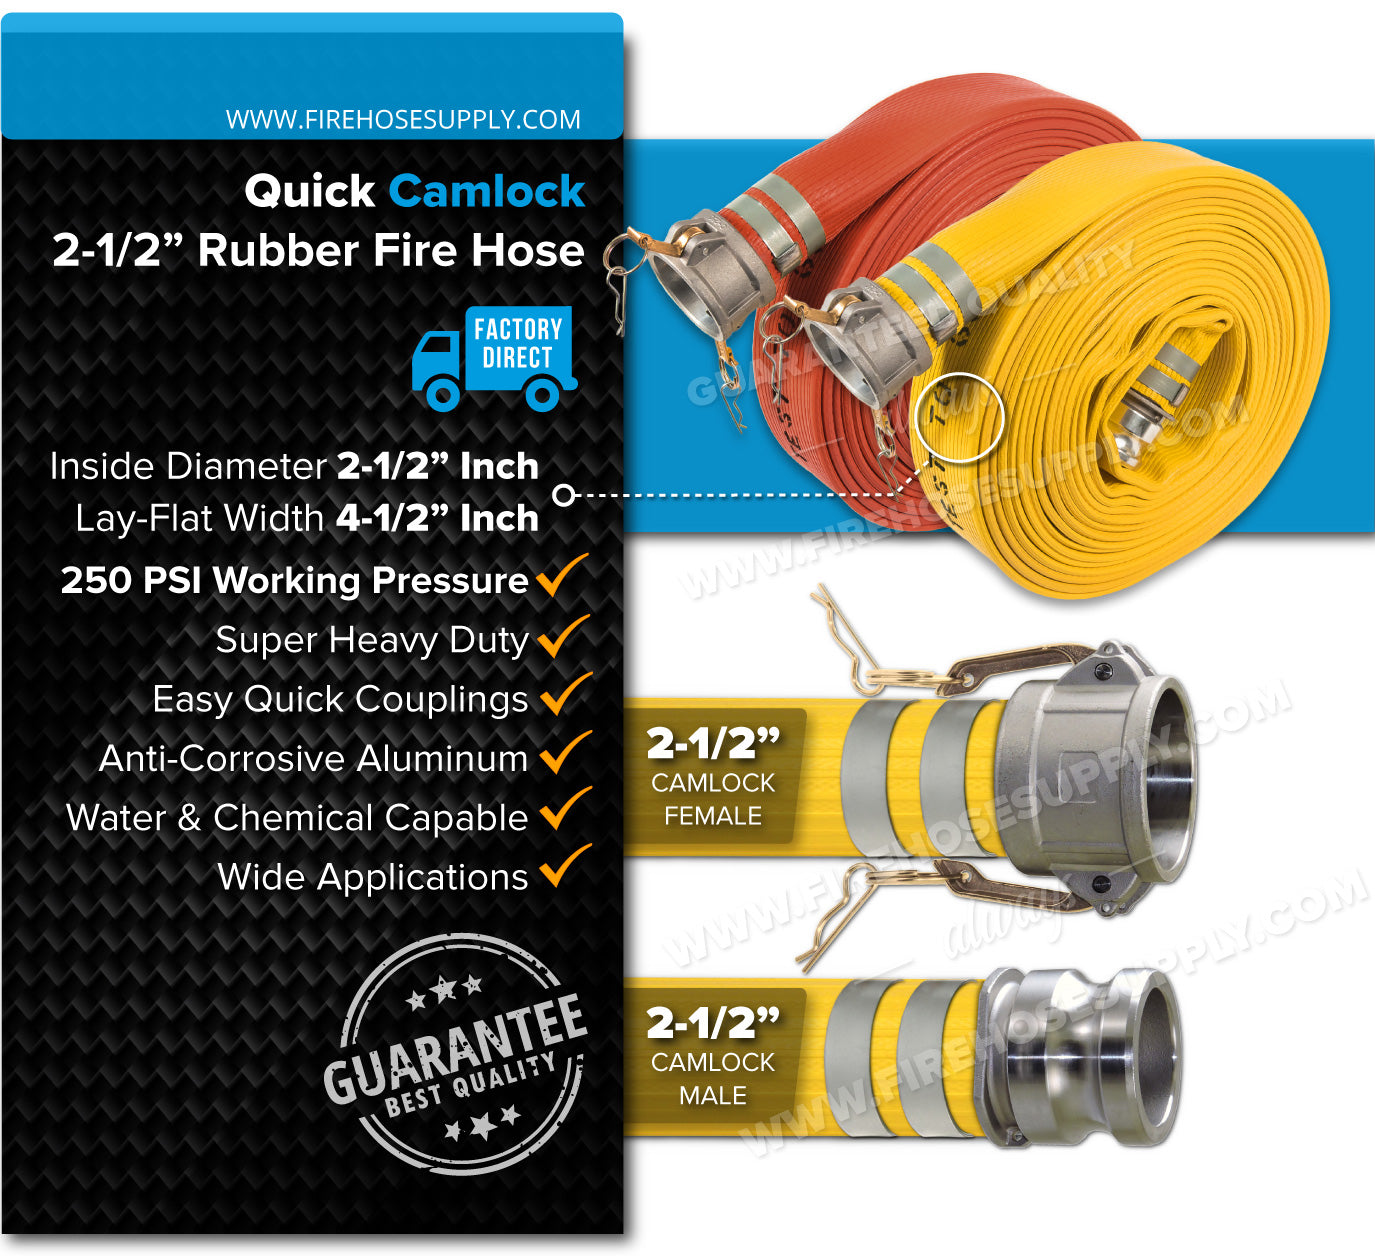 2-1-2 Inch Rubber Camlock Fire Hose Overview